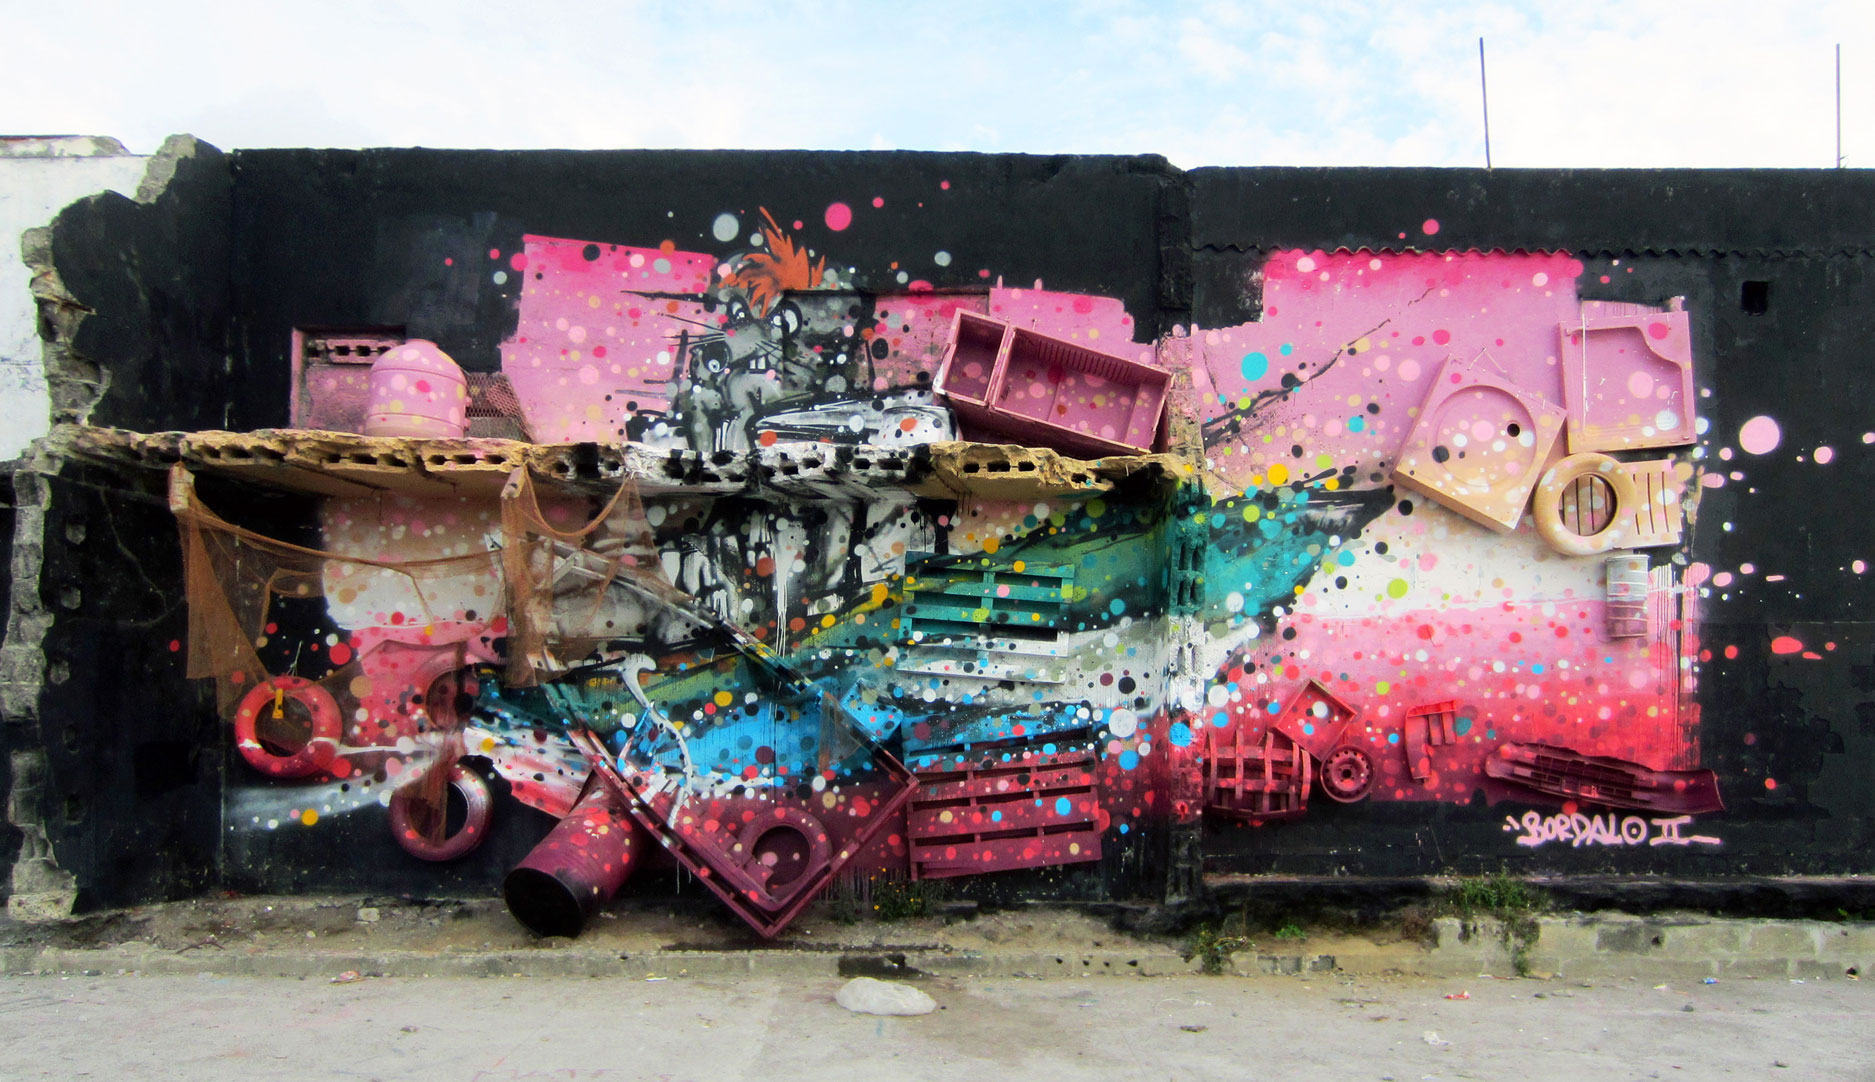 bordalo II graffiti street art